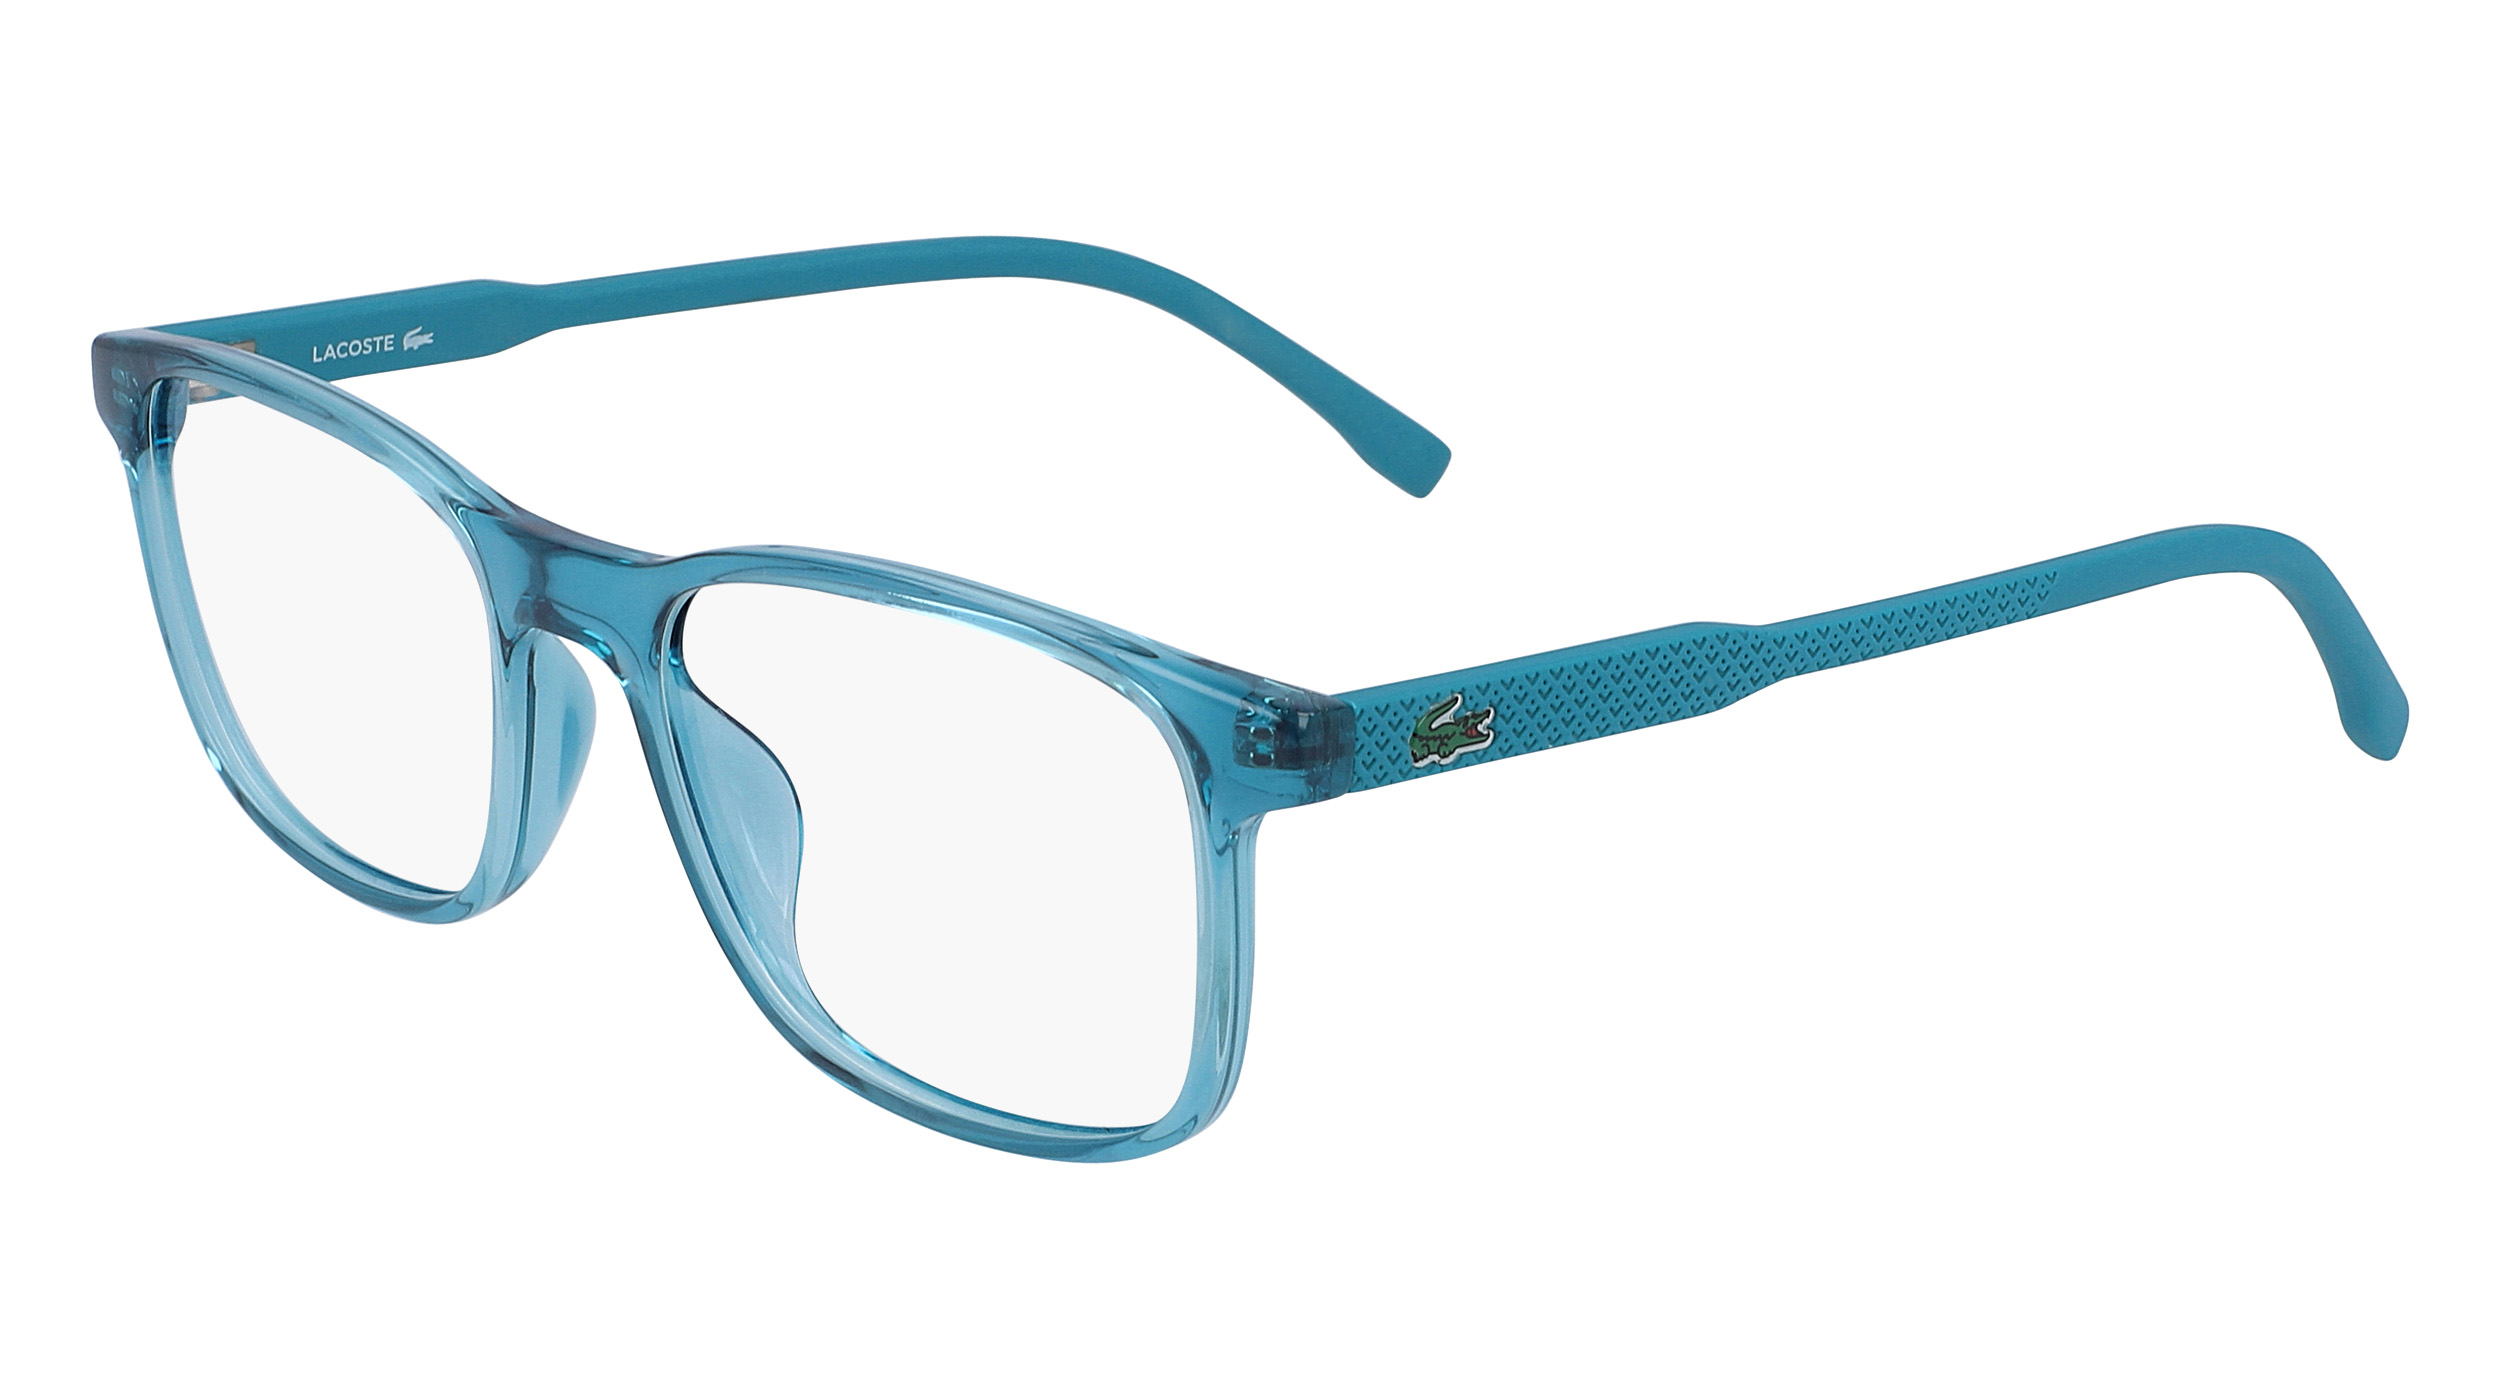 414db4f1ca50 Prescription Eye Glasses, Frames and Lenses for Kids and Teens. Buy Online,  Coupons, Free Shipping - Girl Teal_Turqoise 8-10 years - Optiwow